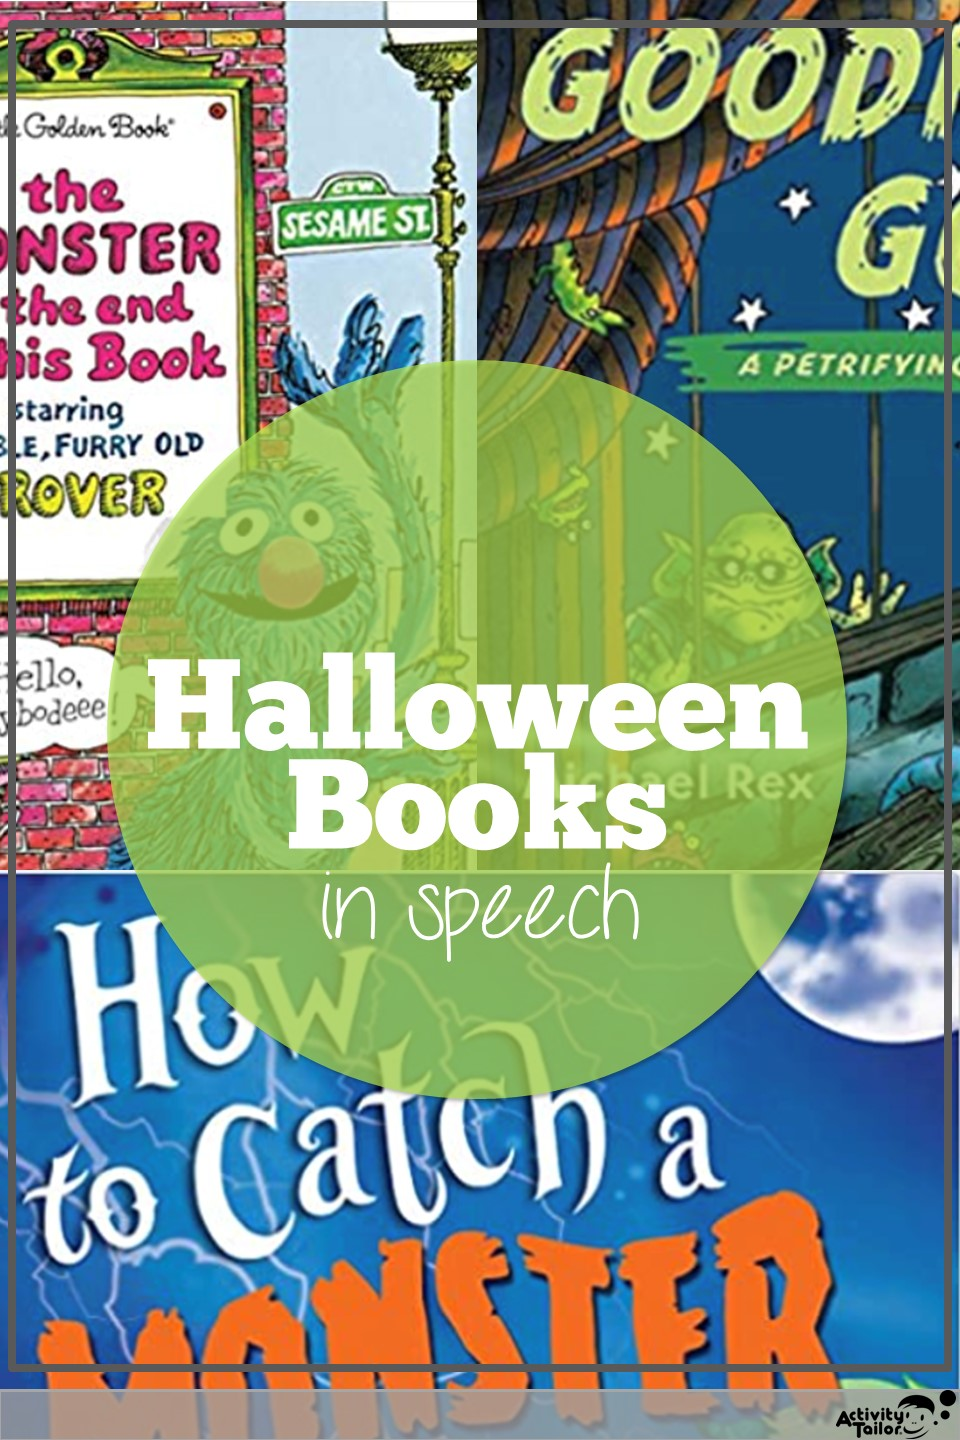 Halloween books in speech